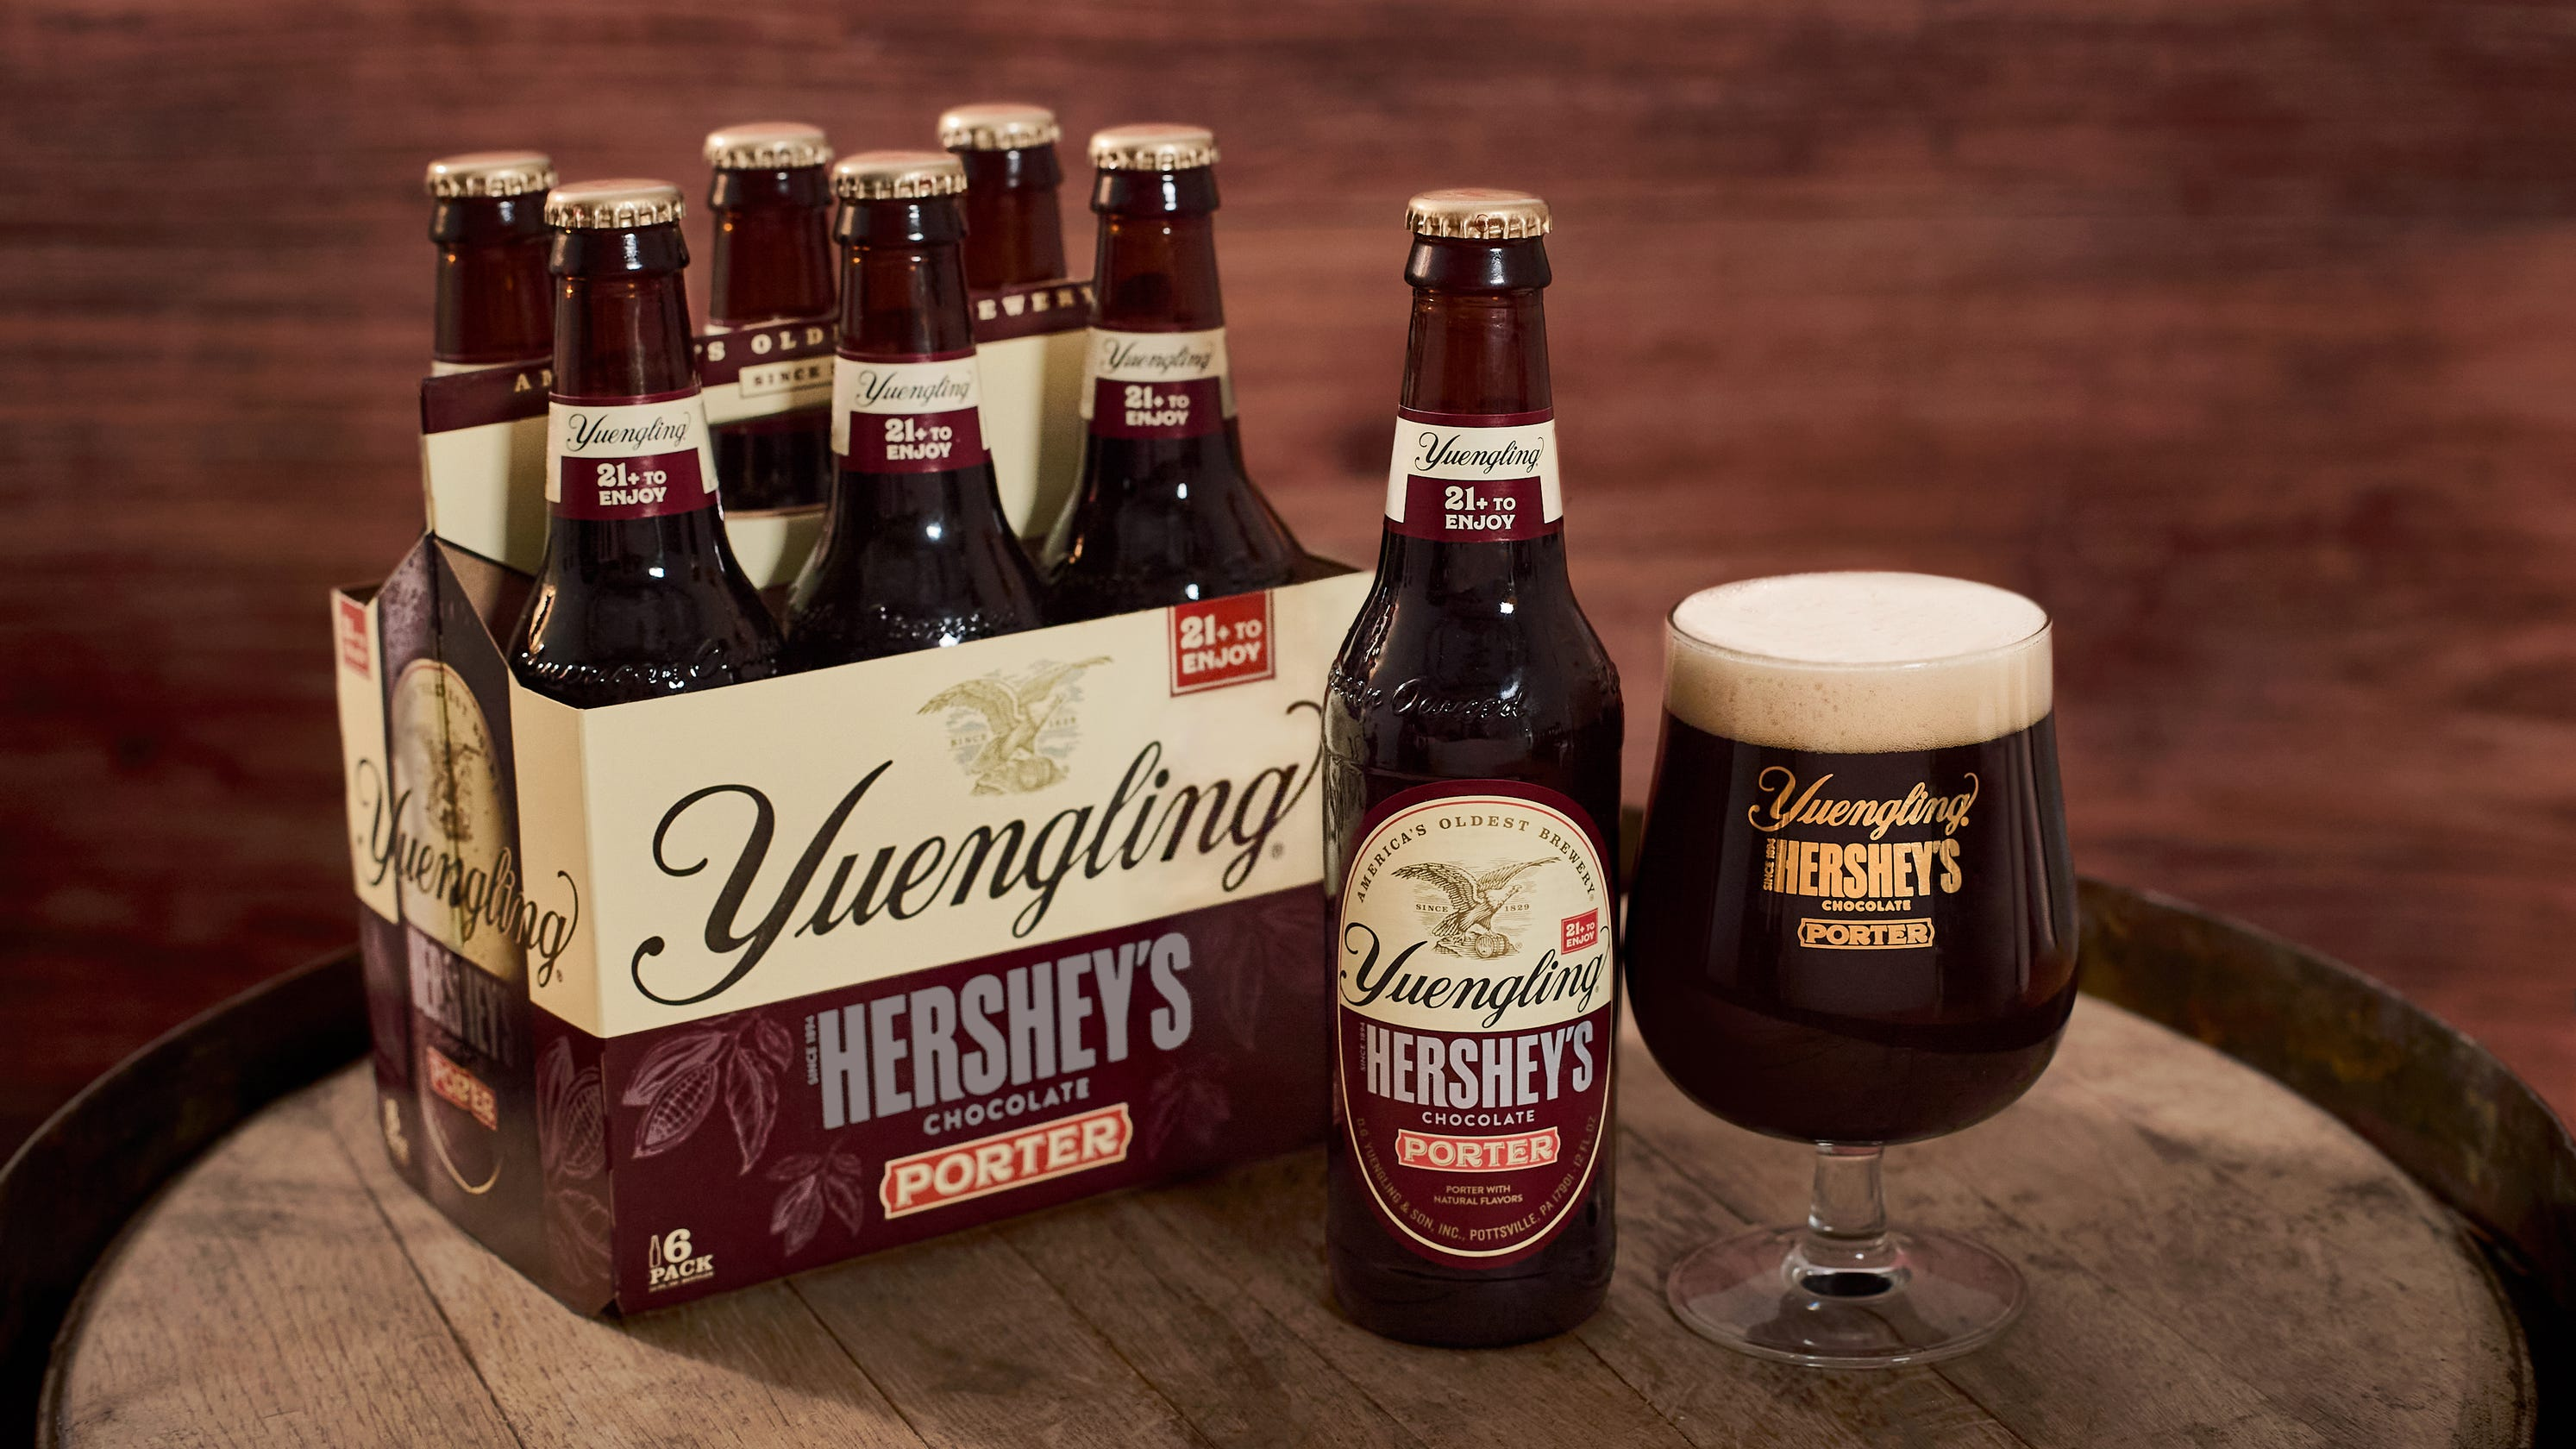 Hershey, Yuengling mix beer and chocolate a porter brew